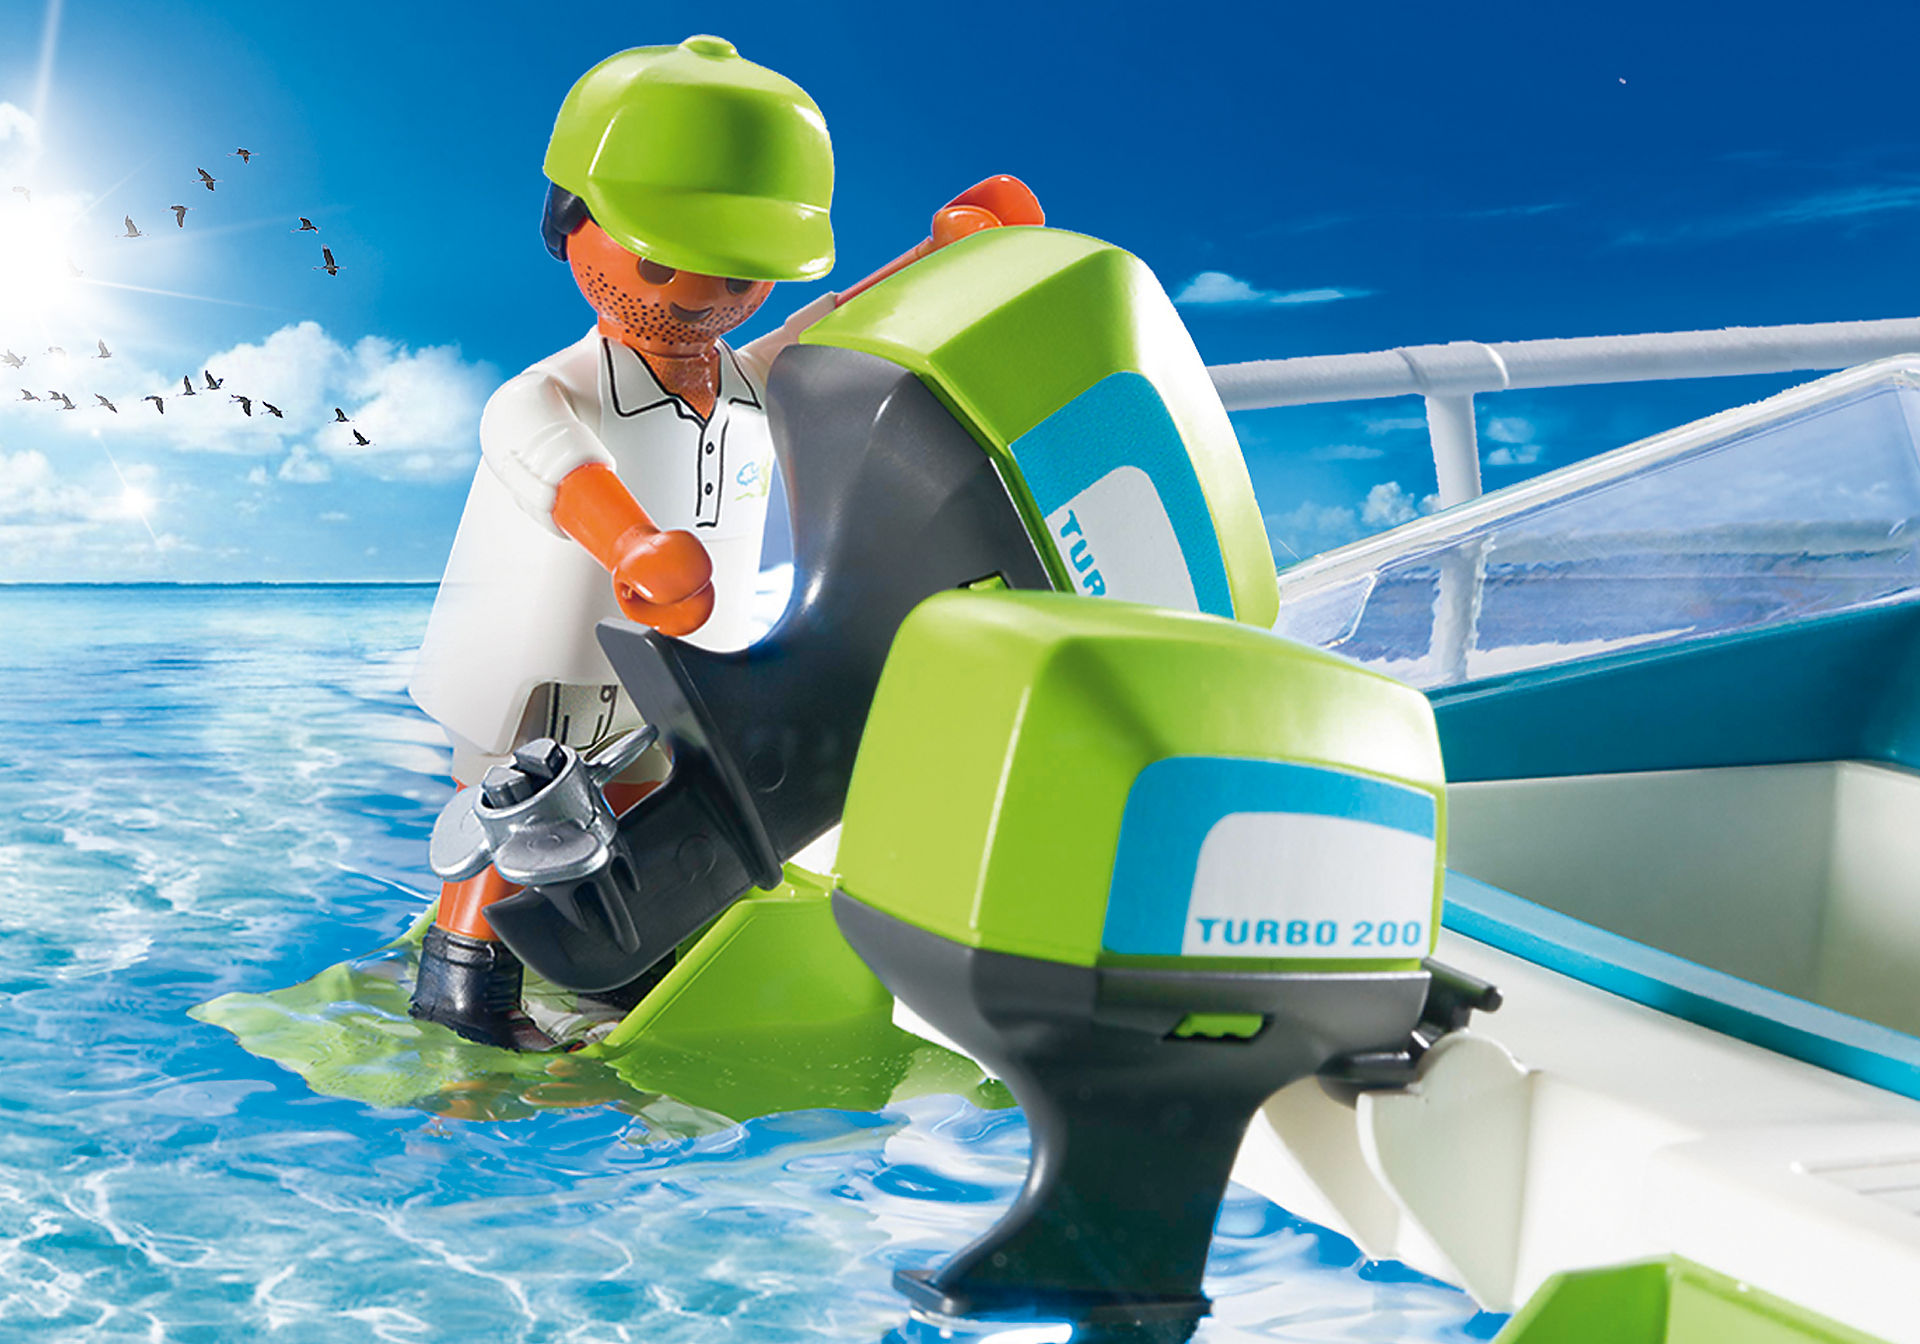 http://media.playmobil.com/i/playmobil/9233_product_extra1/Glasboot met onderwatermotor